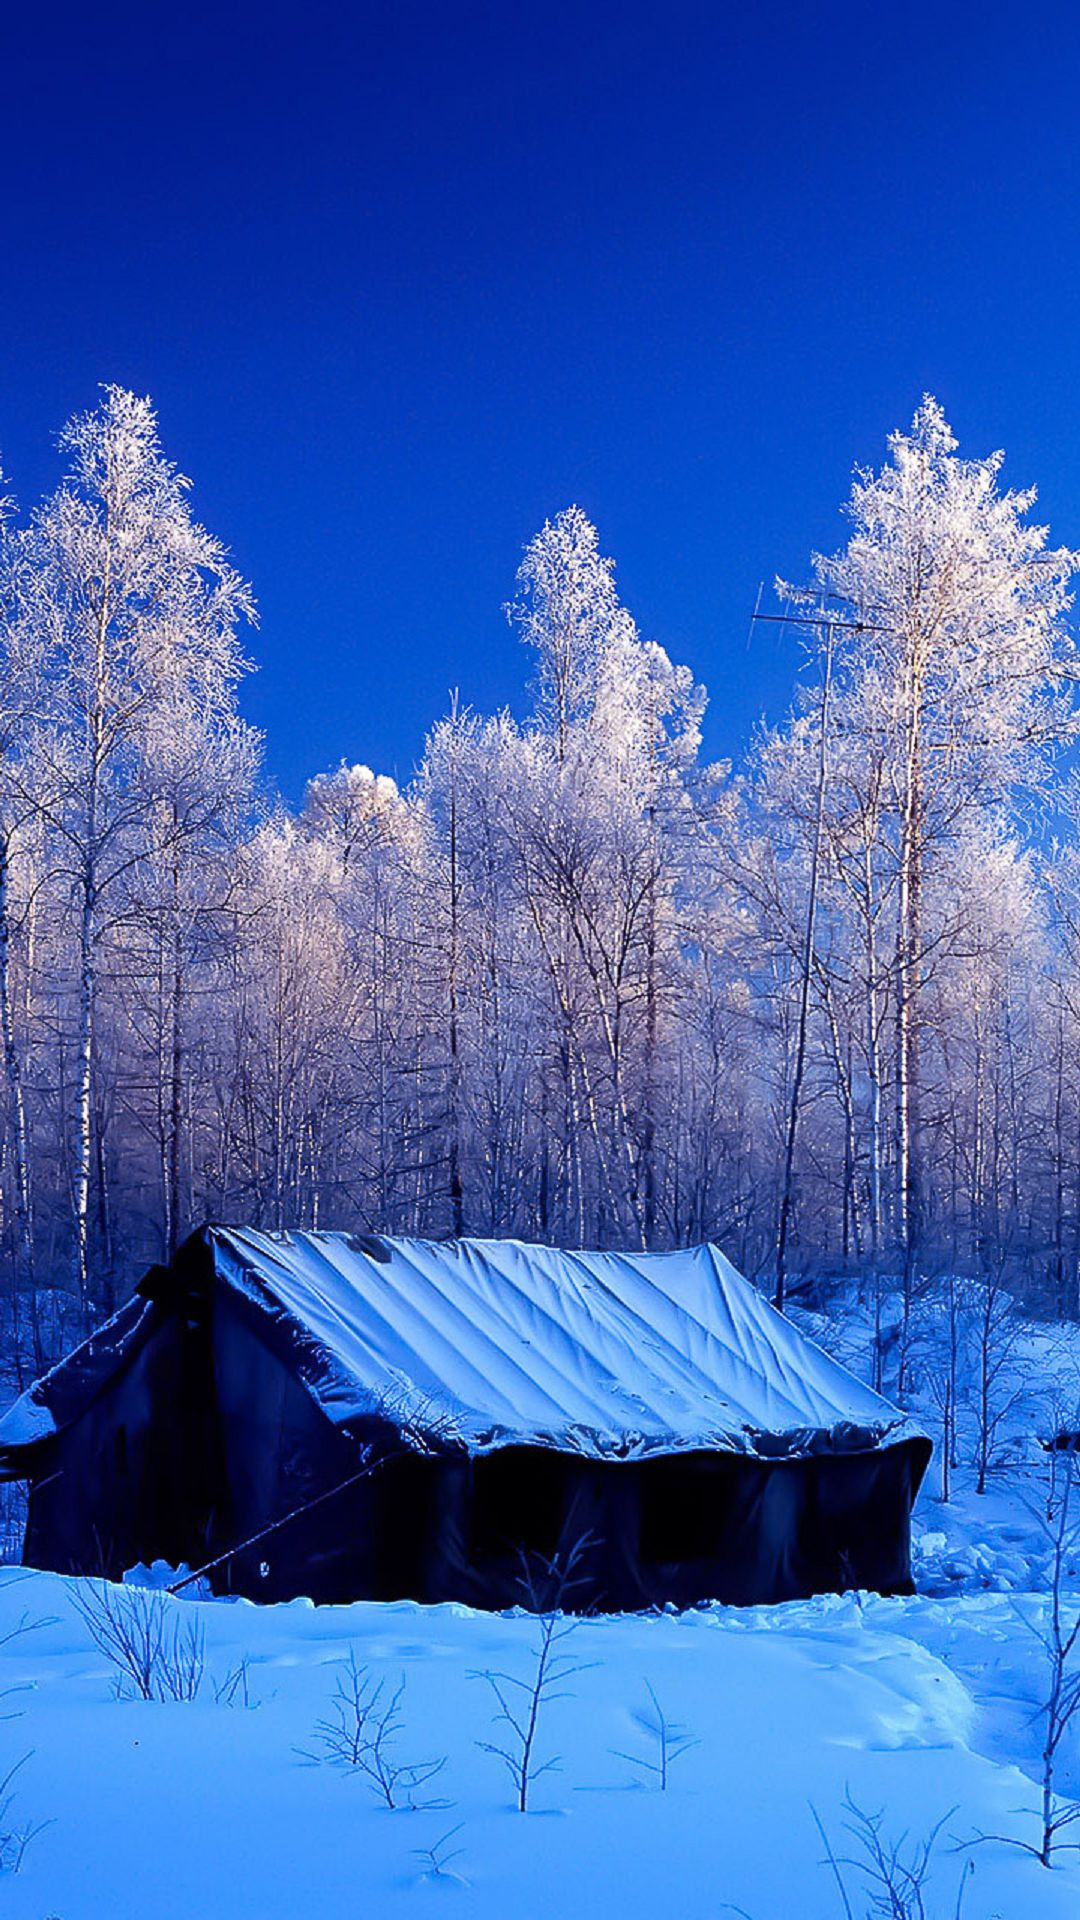 Wallpaper Images Snow Forest Tent Winter Nature Android